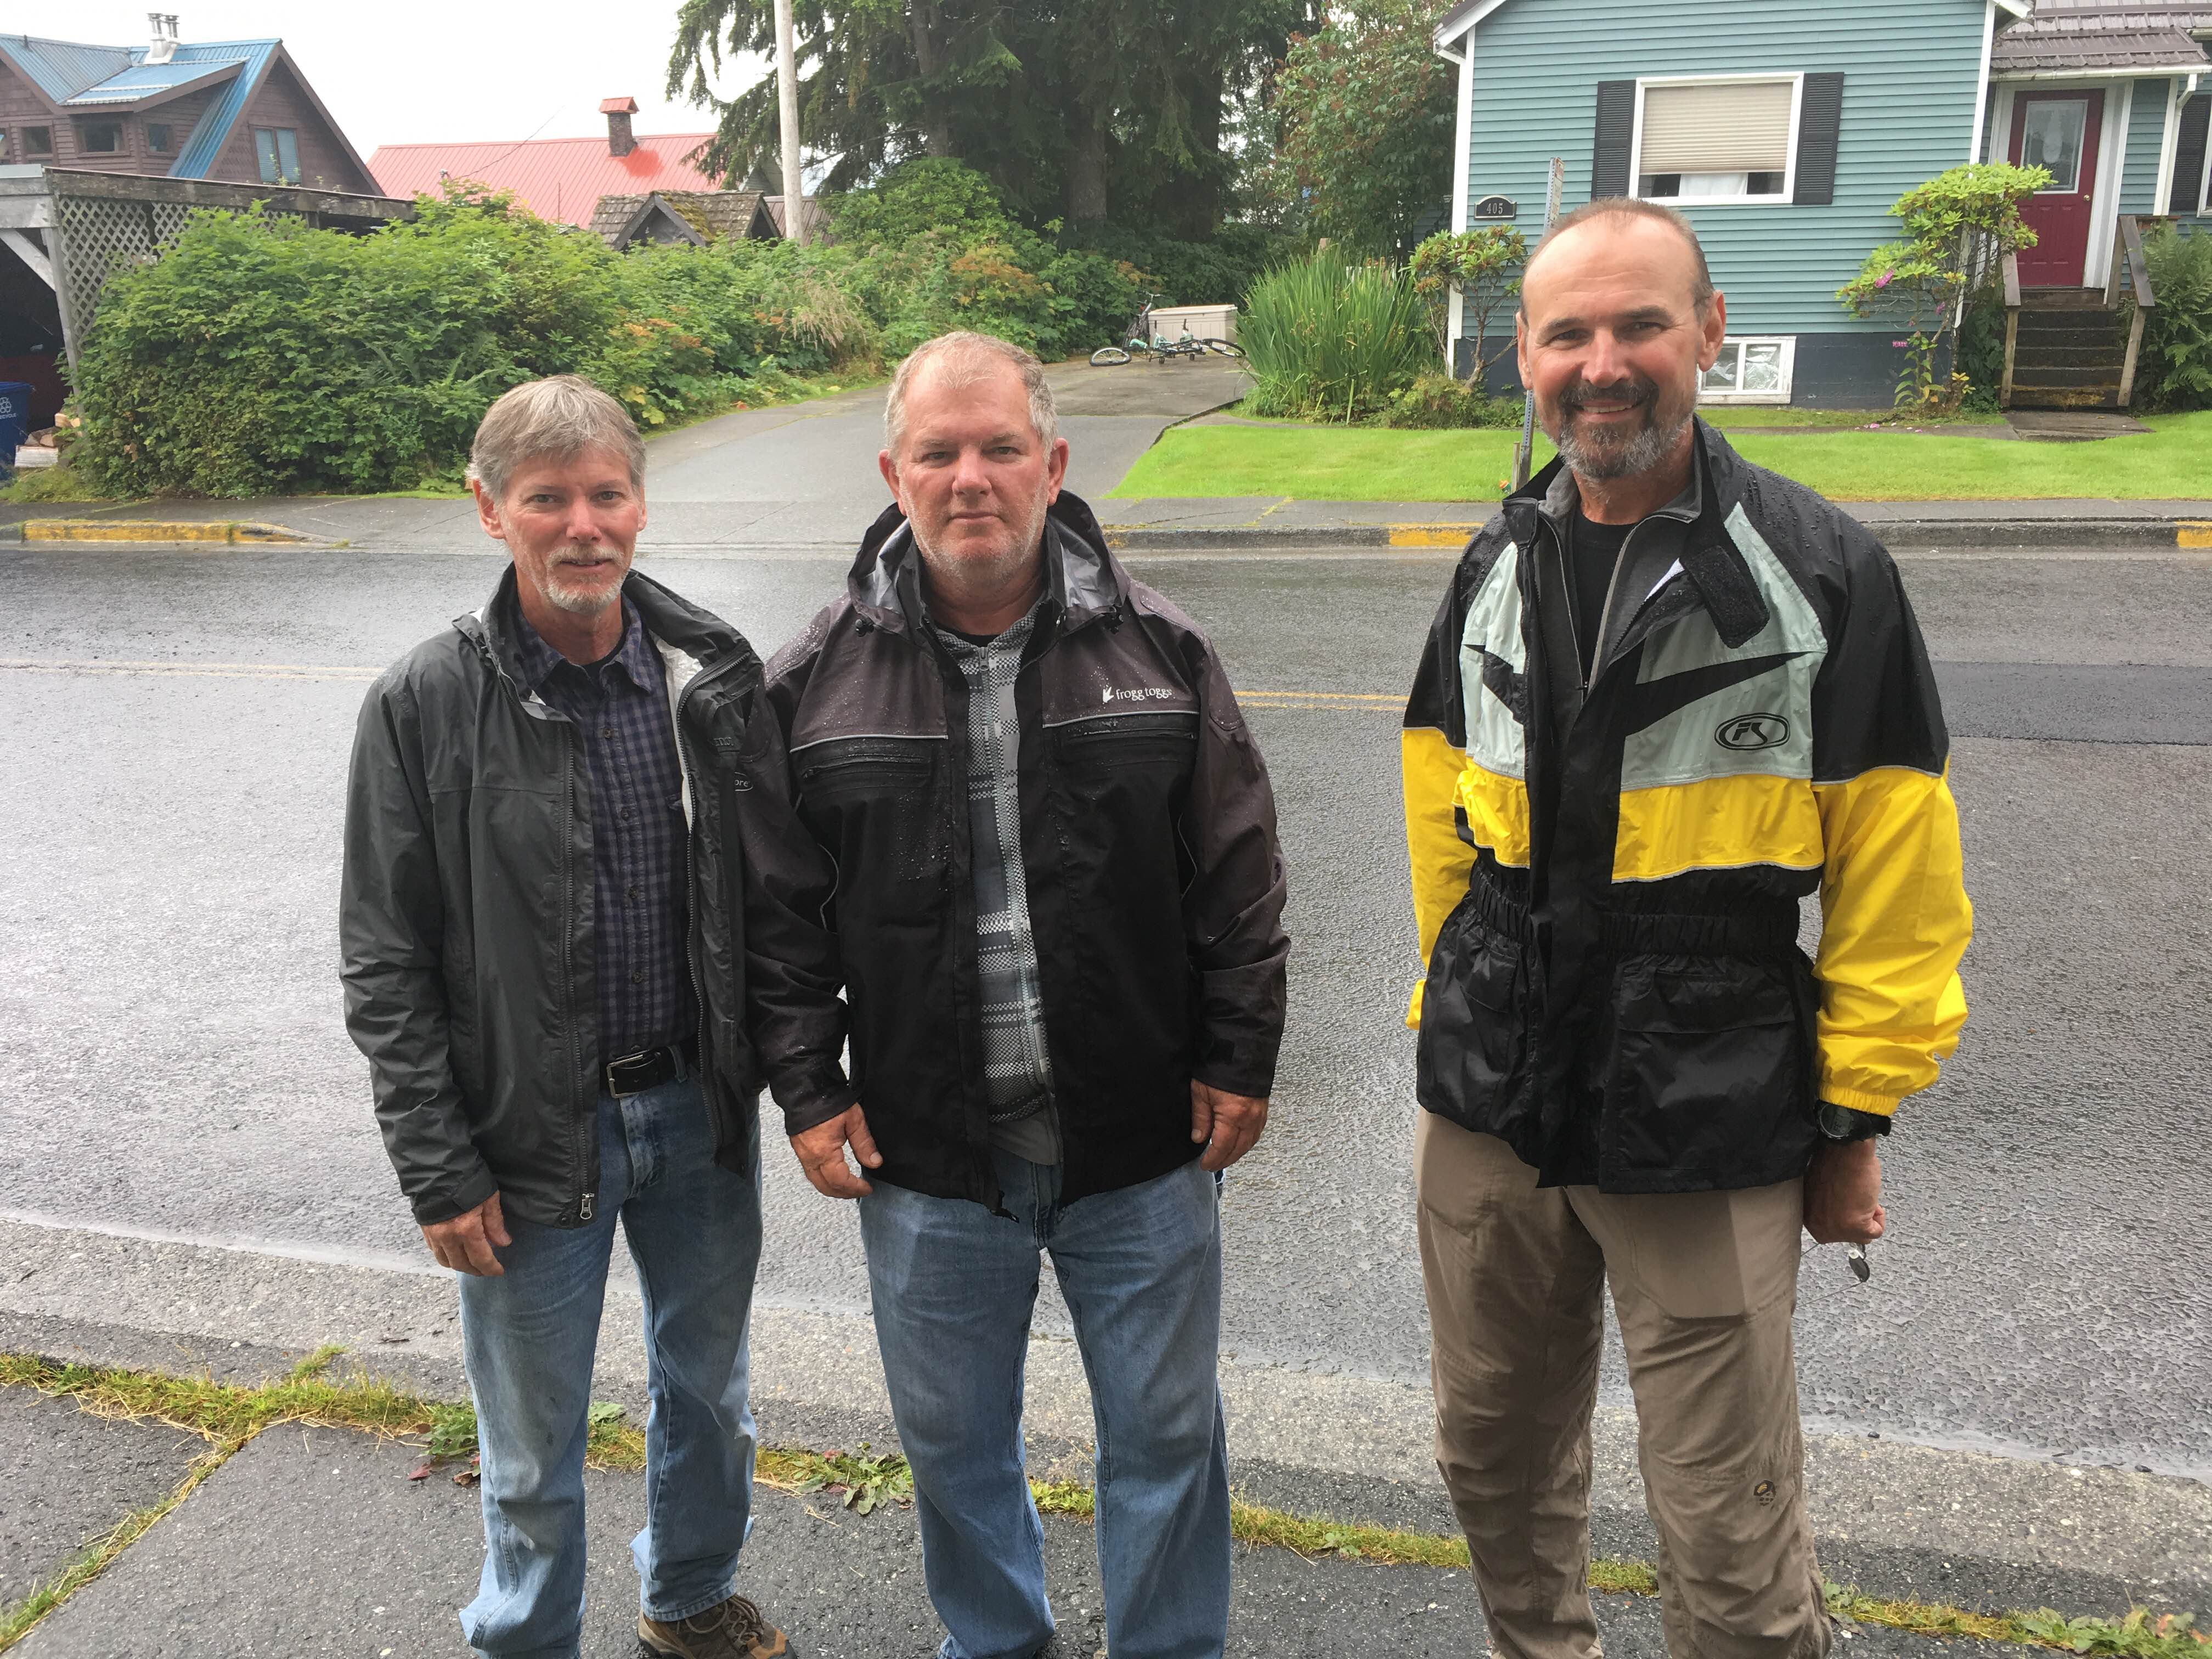 Joe Yuhas and brothers Steve and Larry Banwart were stranded in Petersburg after the Columbia ferry broke down on Wednesday. (Photo/Abbey Collins)